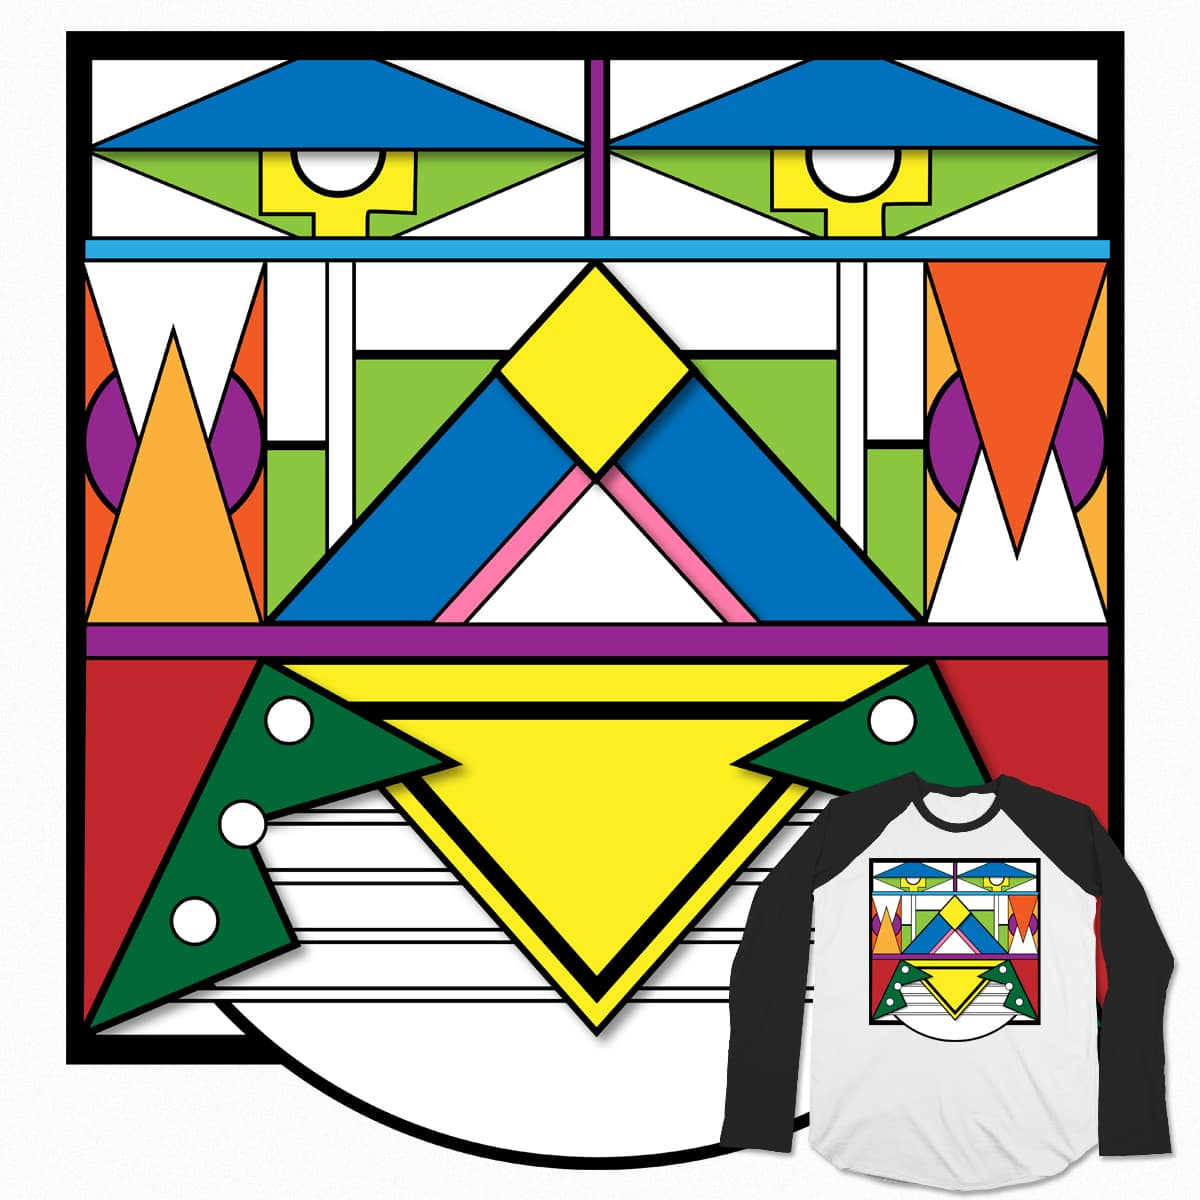 Ndebele Transformer by Astrovix on Threadless